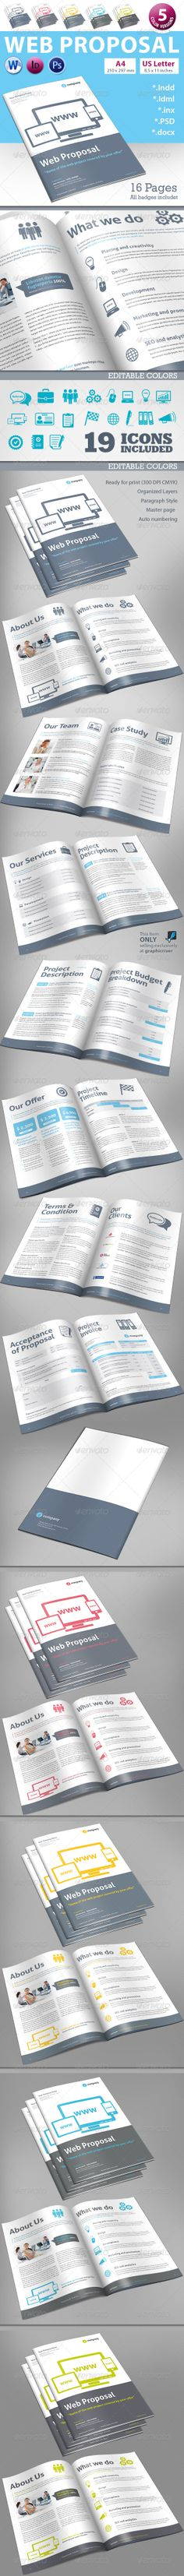 Web Proposal Proposals and Stationery